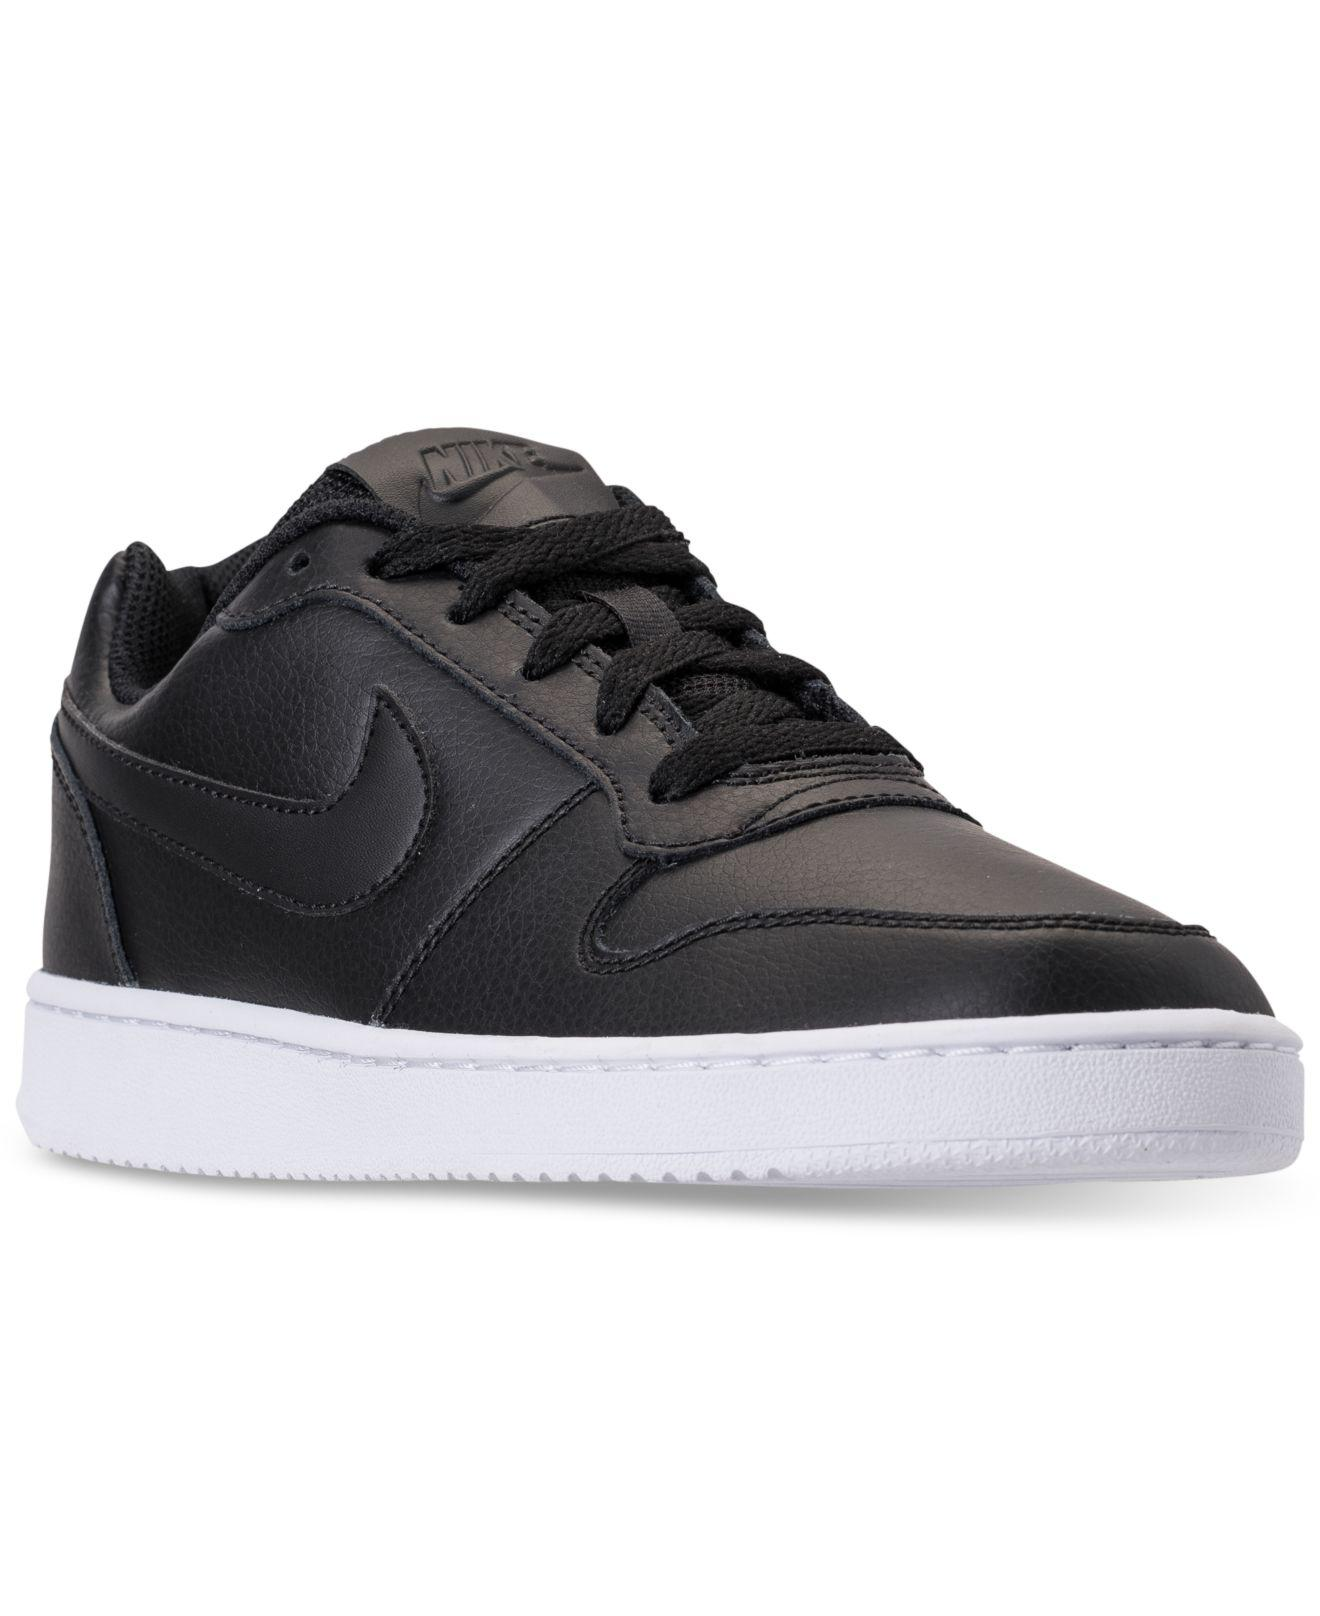 138dd524e8f Lyst - Nike Ebernon Low Casual Sneakers From Finish Line in Black